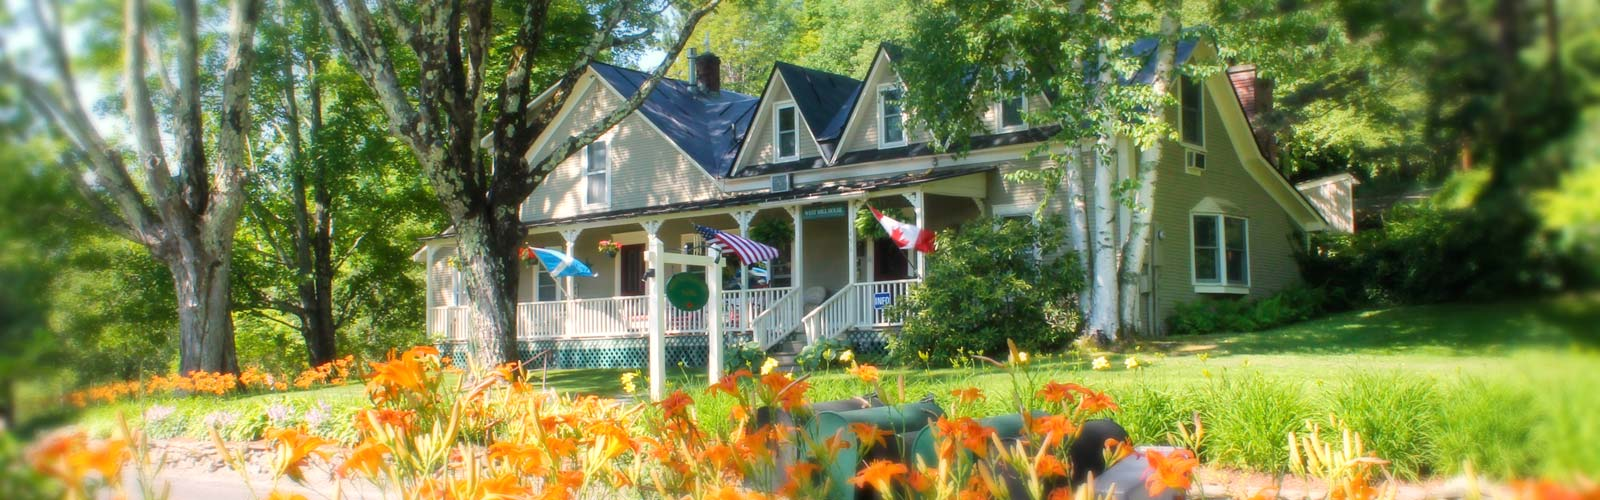 Inn front with day lilies